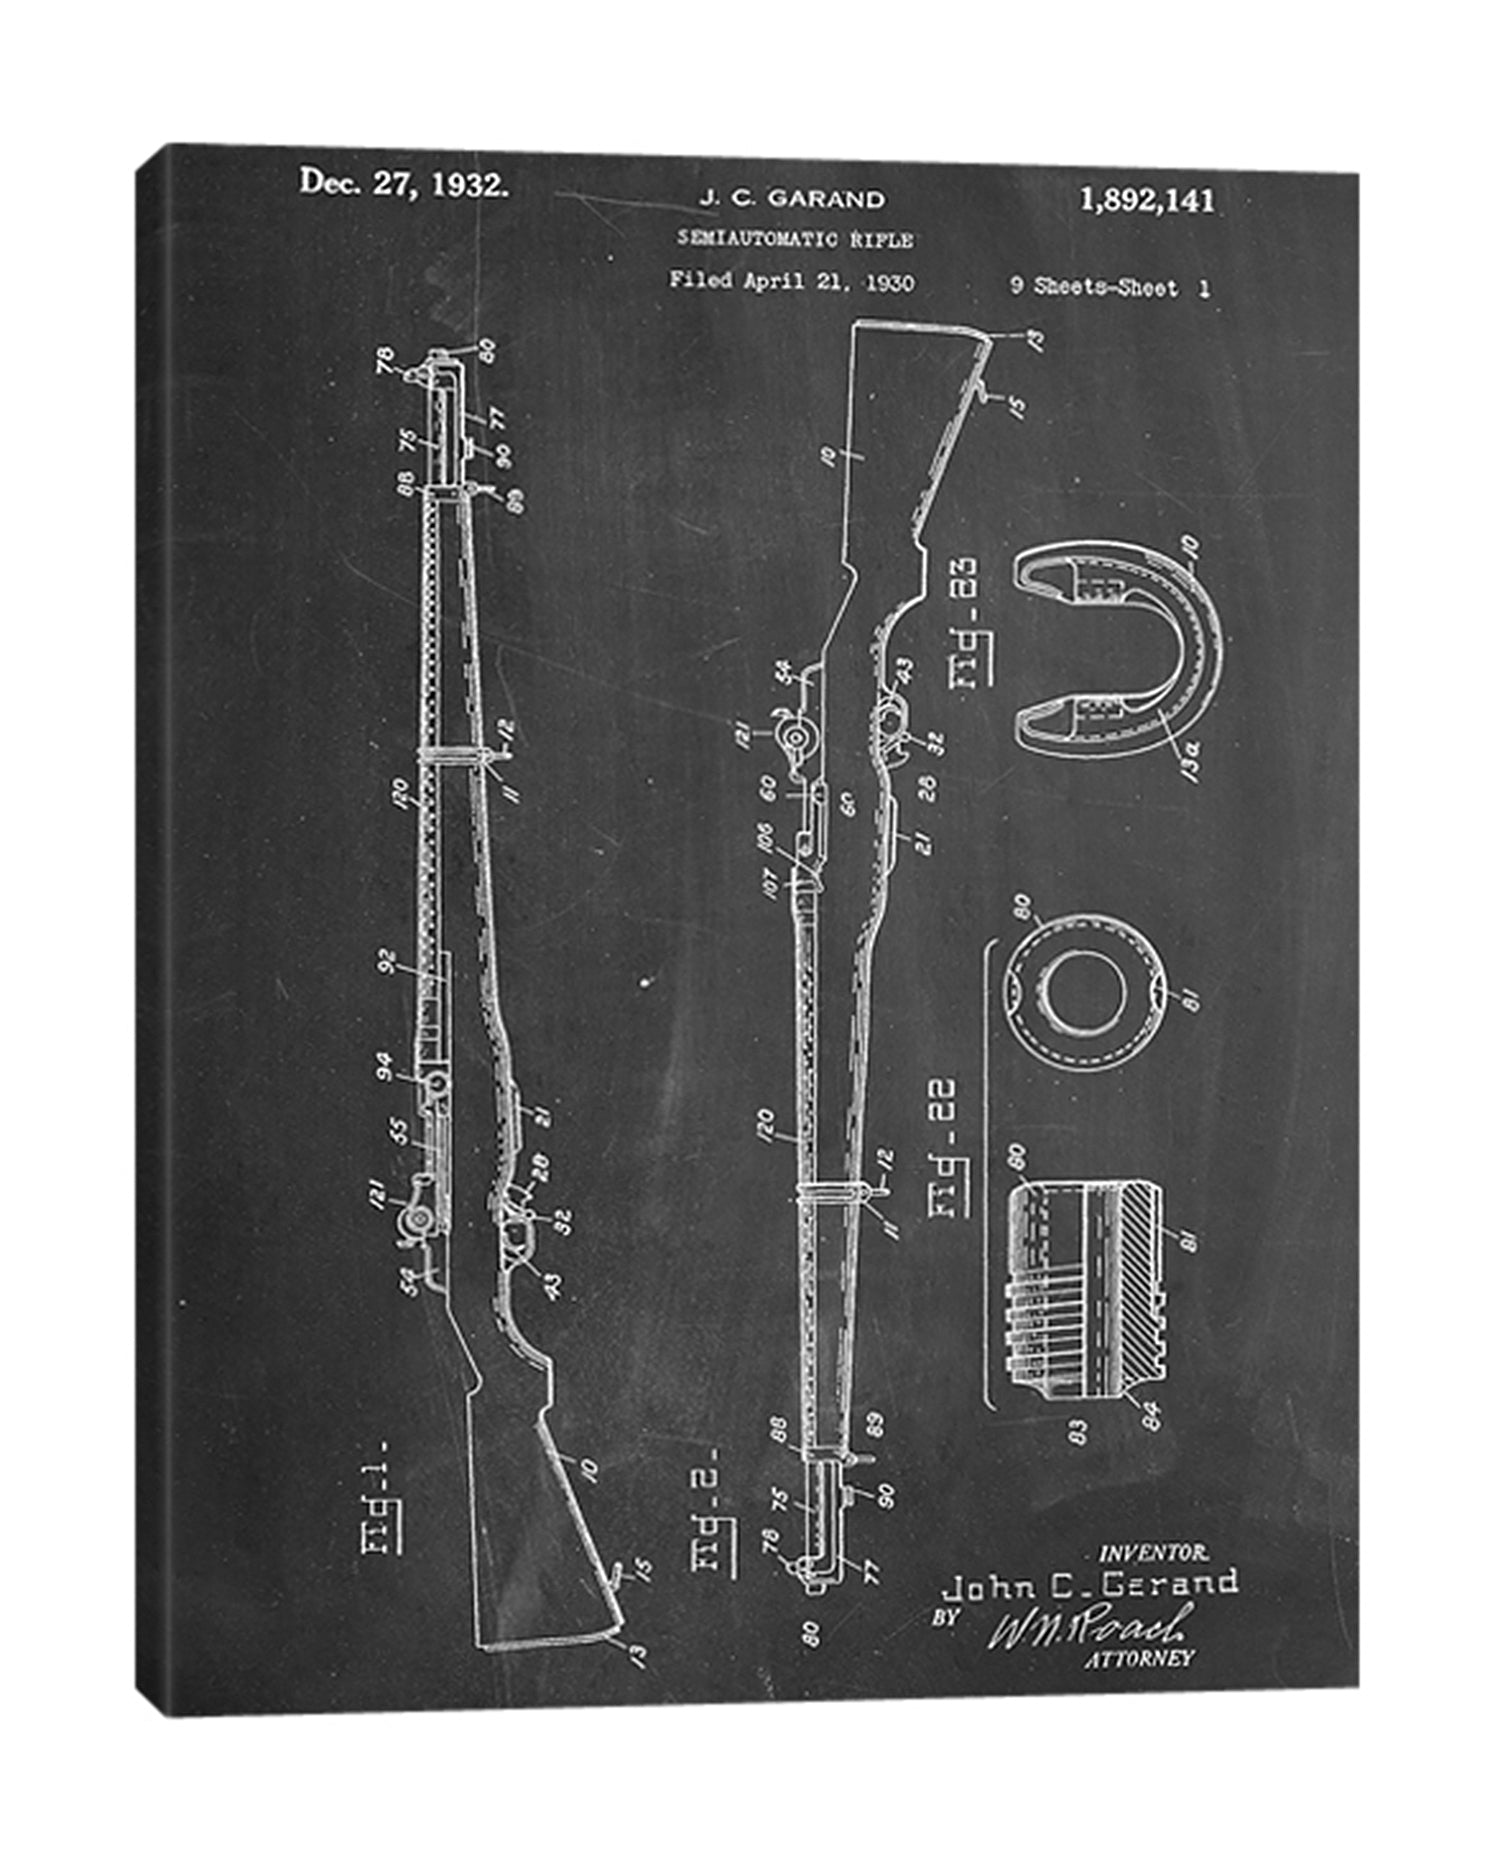 Cole-Borders,Modern & Contemporary,Entertainment,m1 rifle,rifles,guns,numbers,blueprints,patented,words and phrases,parts,Blue,Charcoal Gray,Slate Gray,White,Black